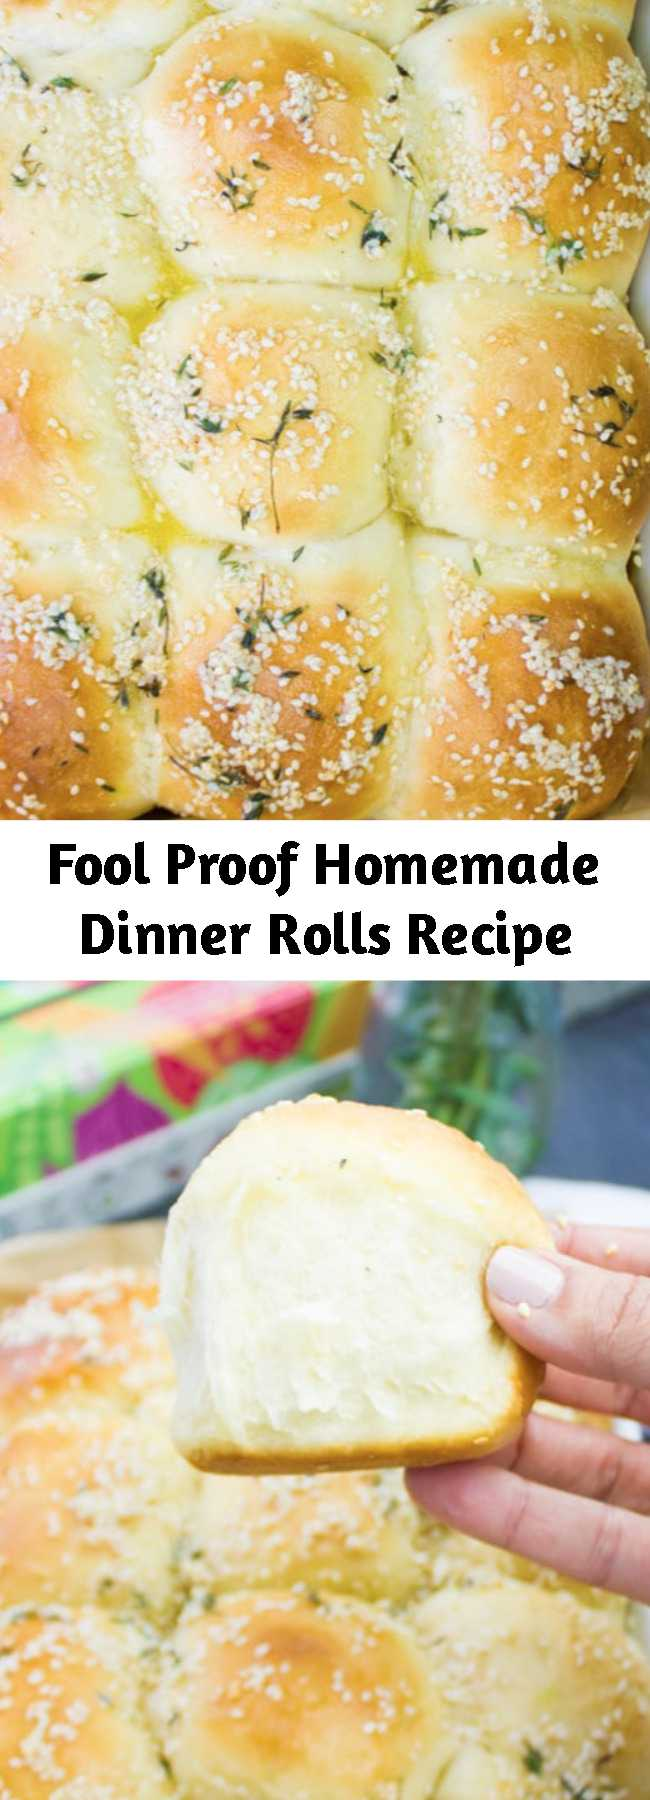 Fool Proof Homemade Dinner Rolls Recipe - These are pillowy, soft, fluffy, melt in your mouth soft dinner rolls. Light as air with a nice buttery taste--this dough is absolutely FOOL PROOF and it's a crowd pleaser every time! You can season them with different herbs, cheese, or spices to get a completely different flavor every single time! The easiest and most versatile bread dough out there!